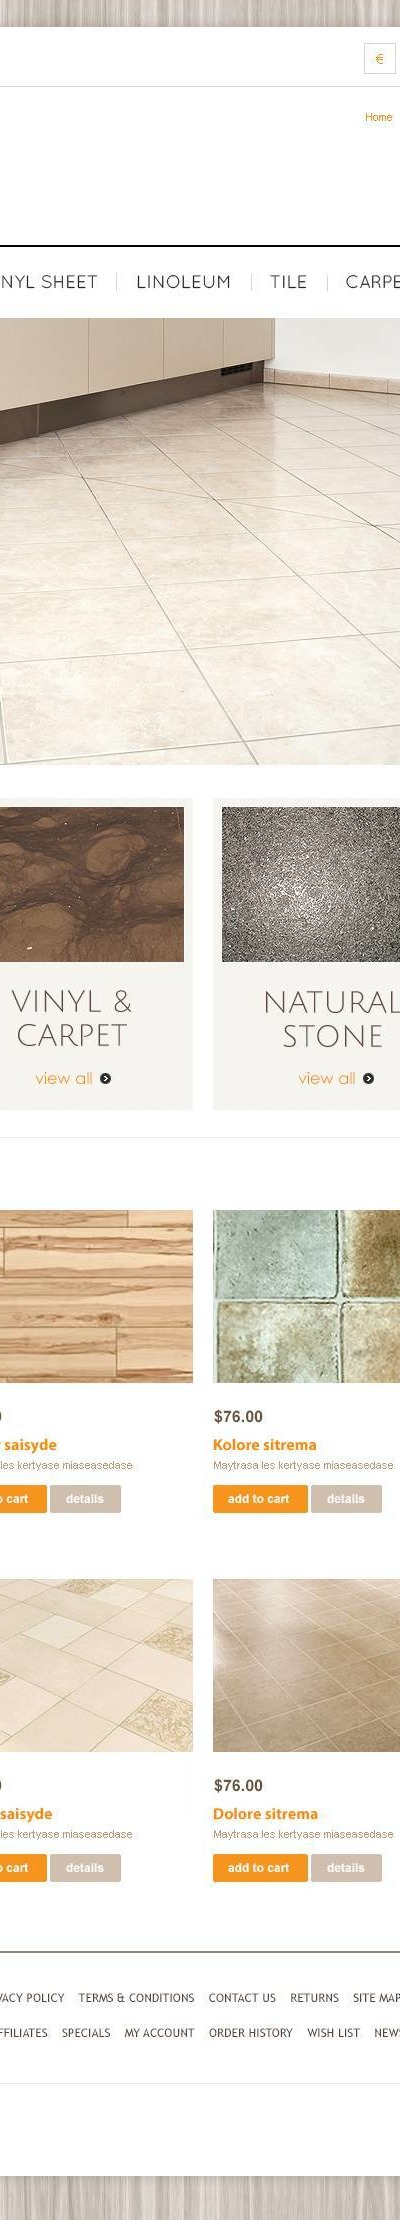 Royal Flooring OpenCart Template